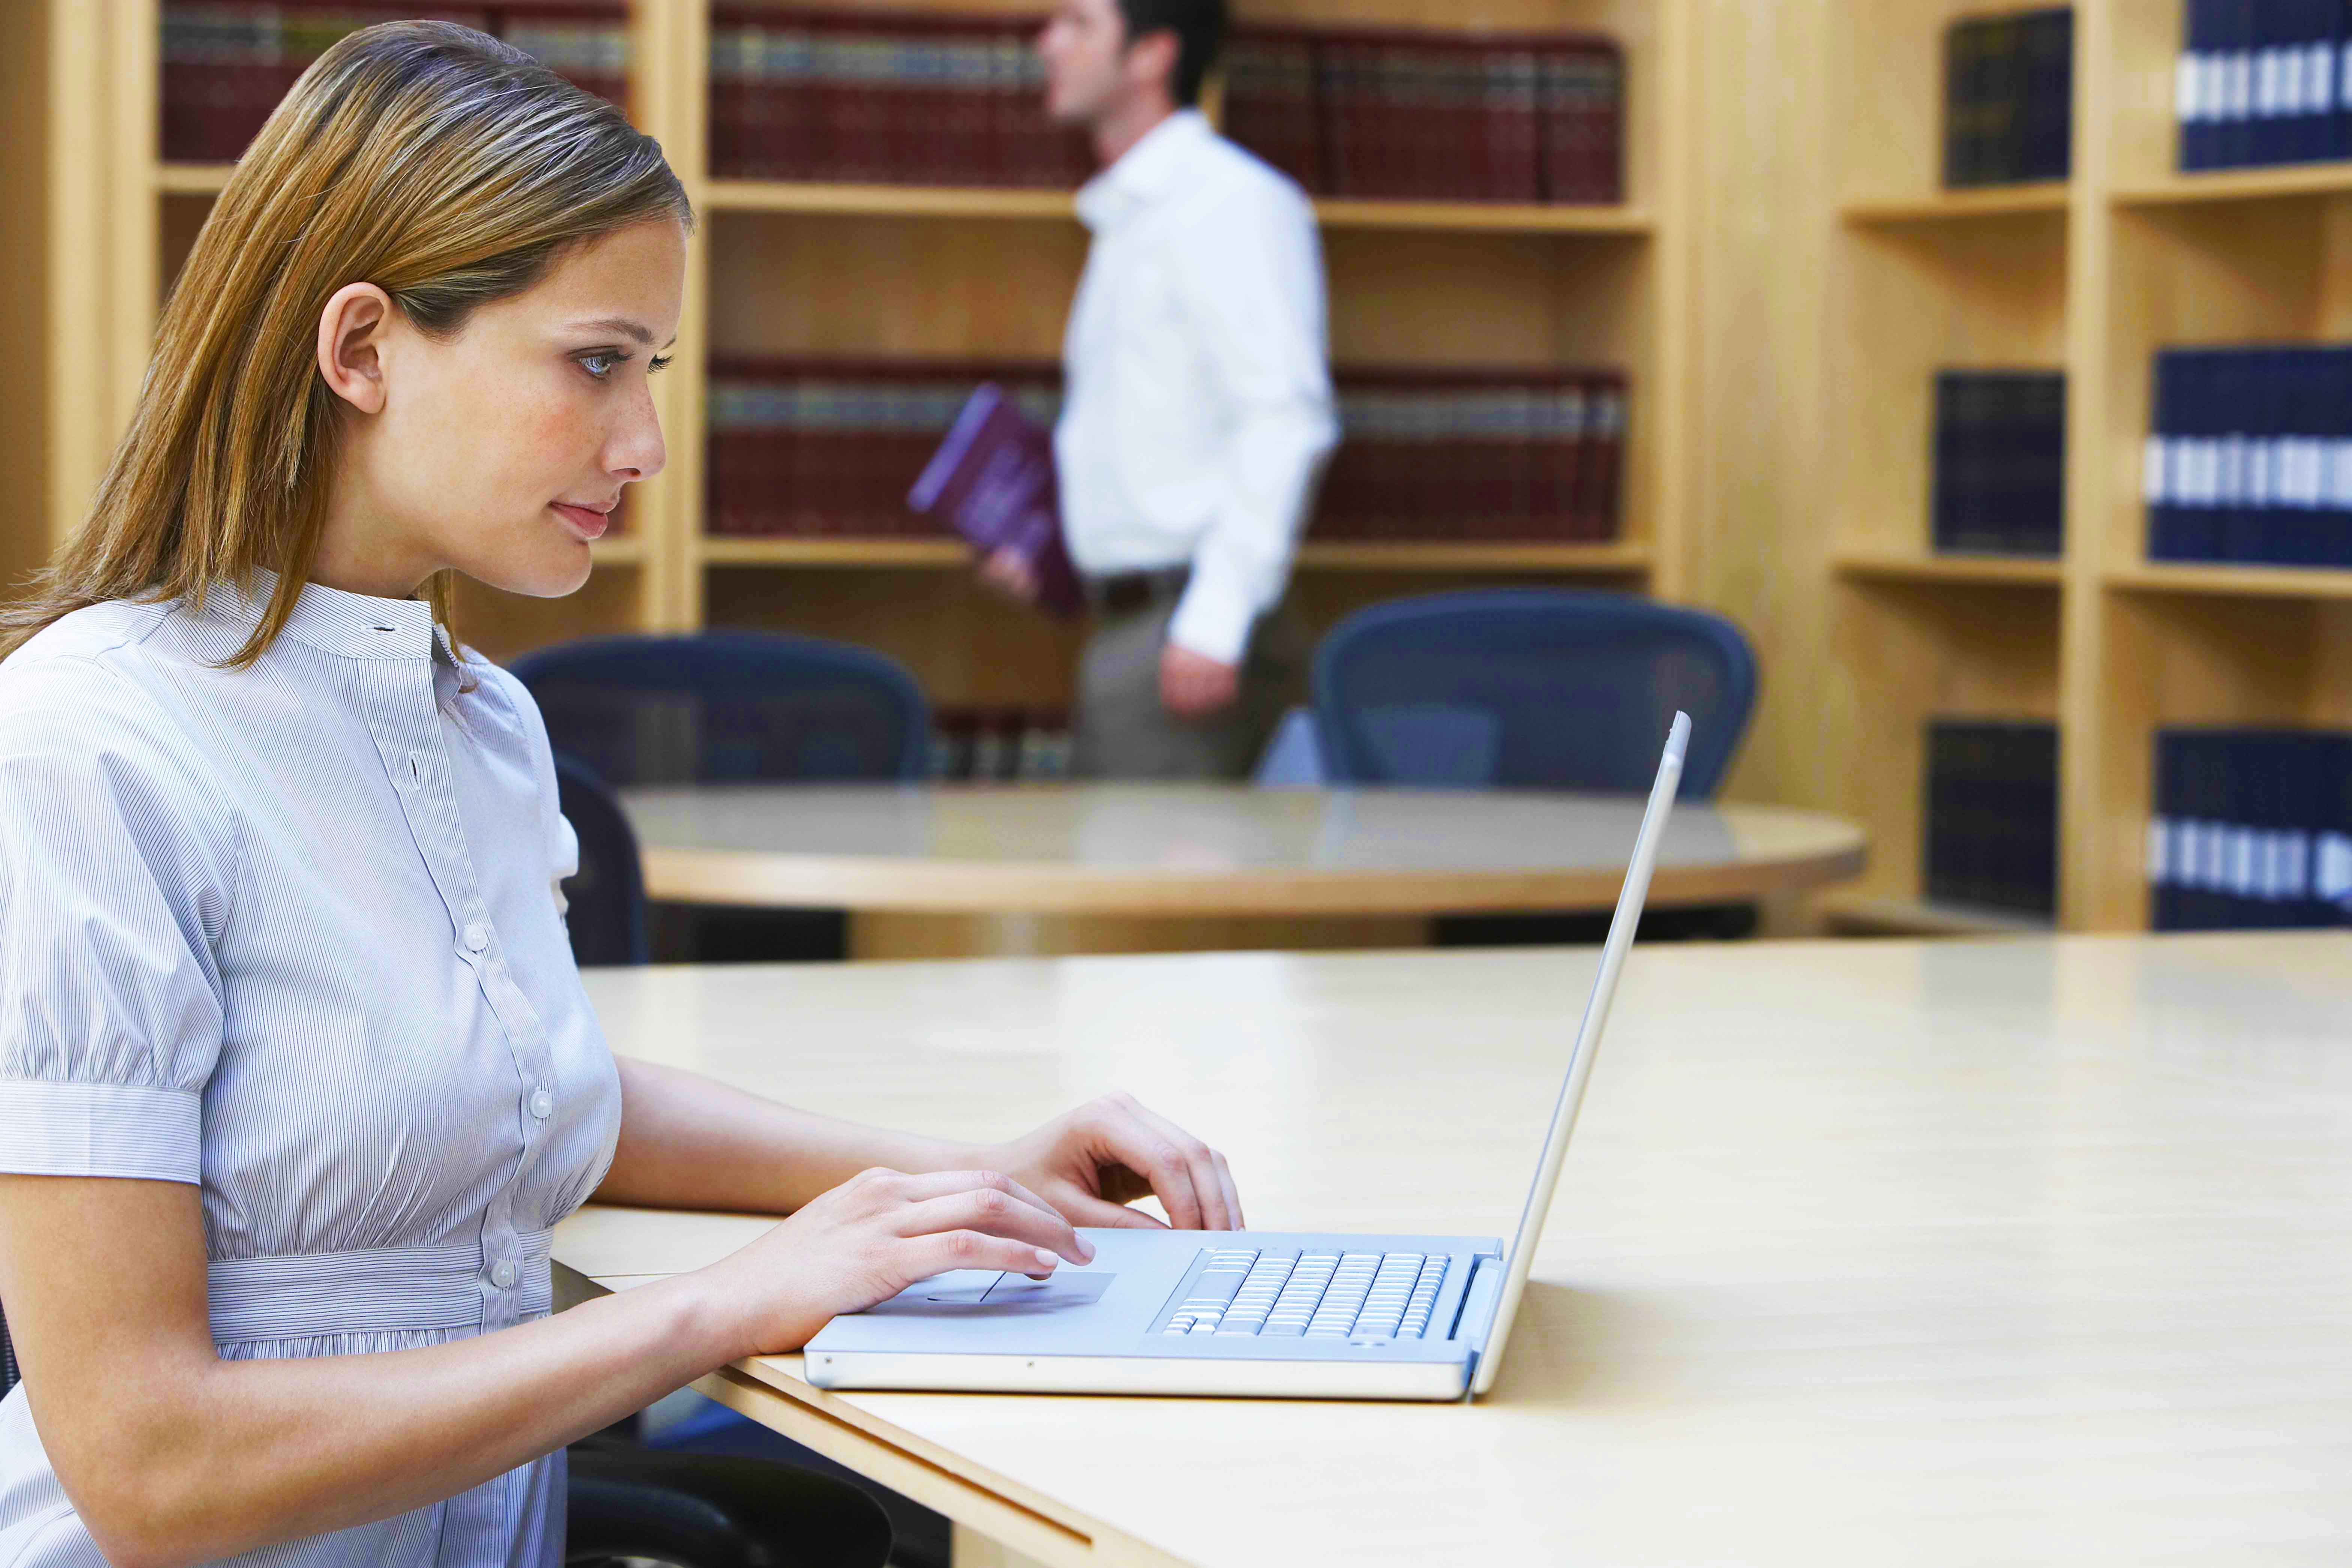 paralegal studies Paralegal studies program orientation august 25th, 2018 the paralegal studies program will be holding an orientation session from 10 am - 12 pm on august 25th, 2018 at.